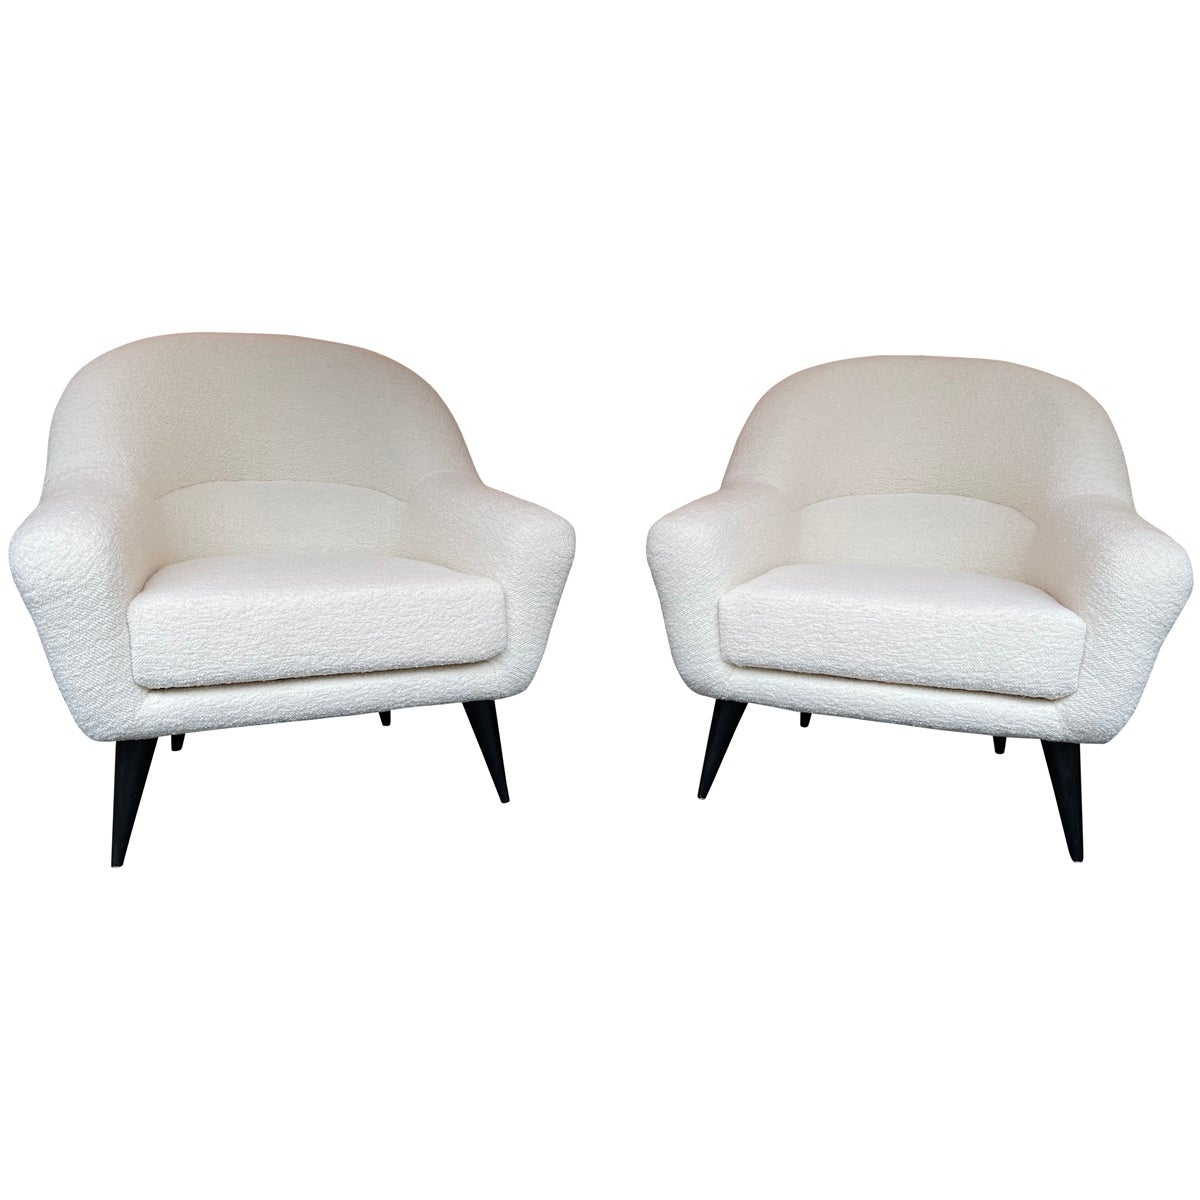 Pair of Armchairs Bouclé Fabric by Charles Ramos, France, 1950s